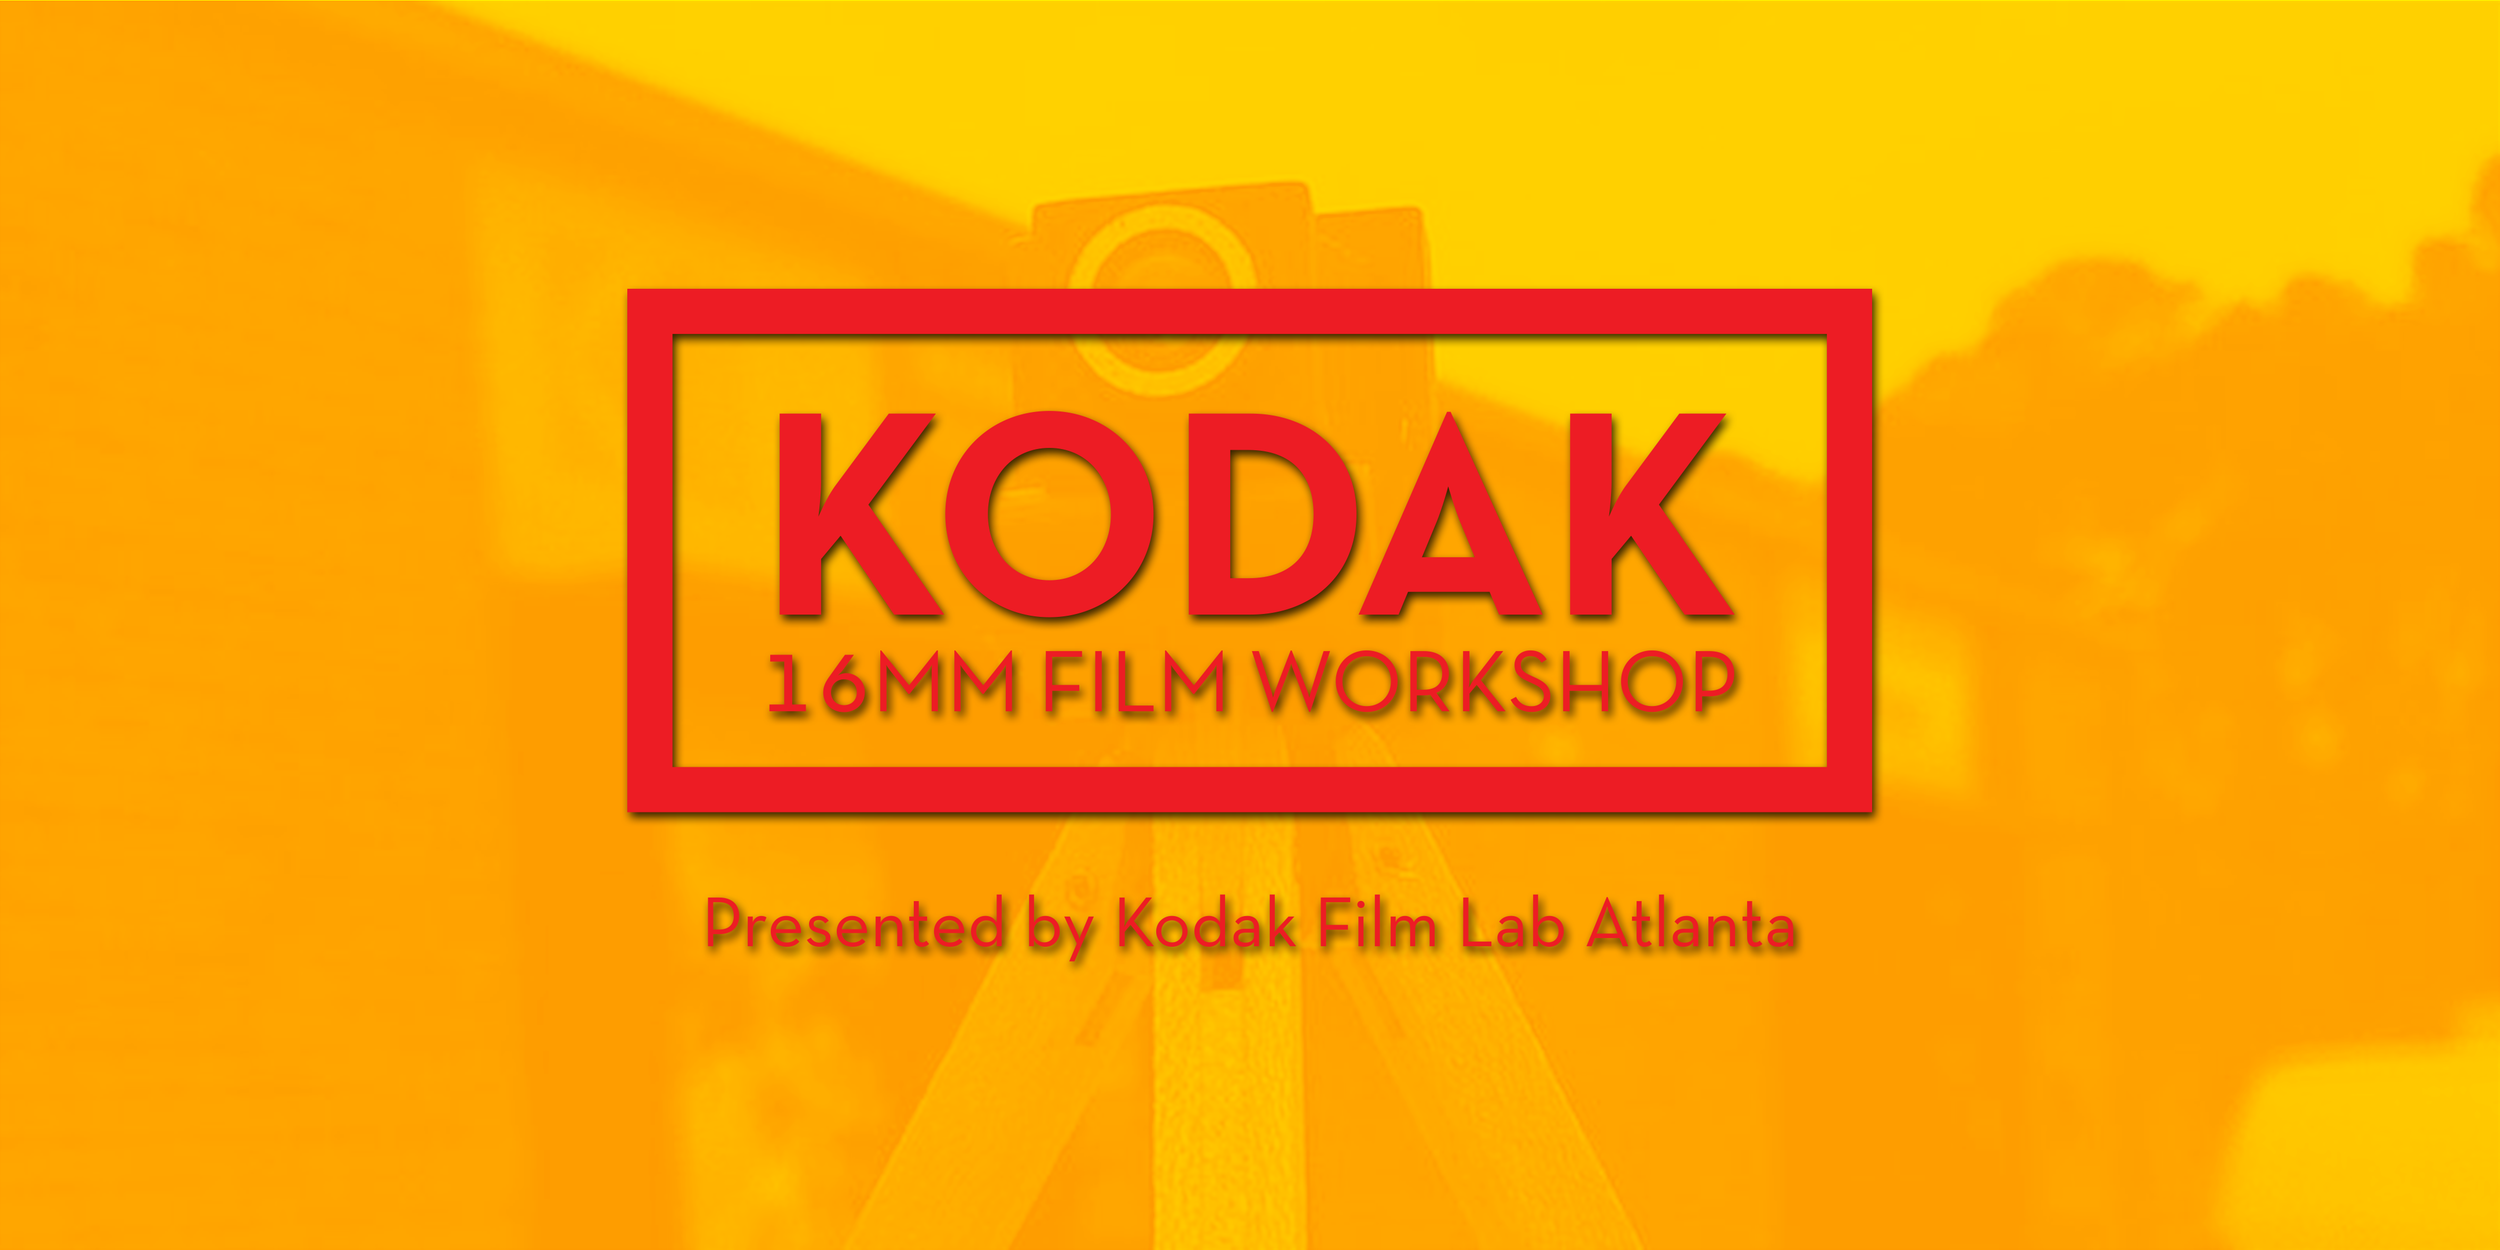 Kodak 16mm Workshop Graphic.png